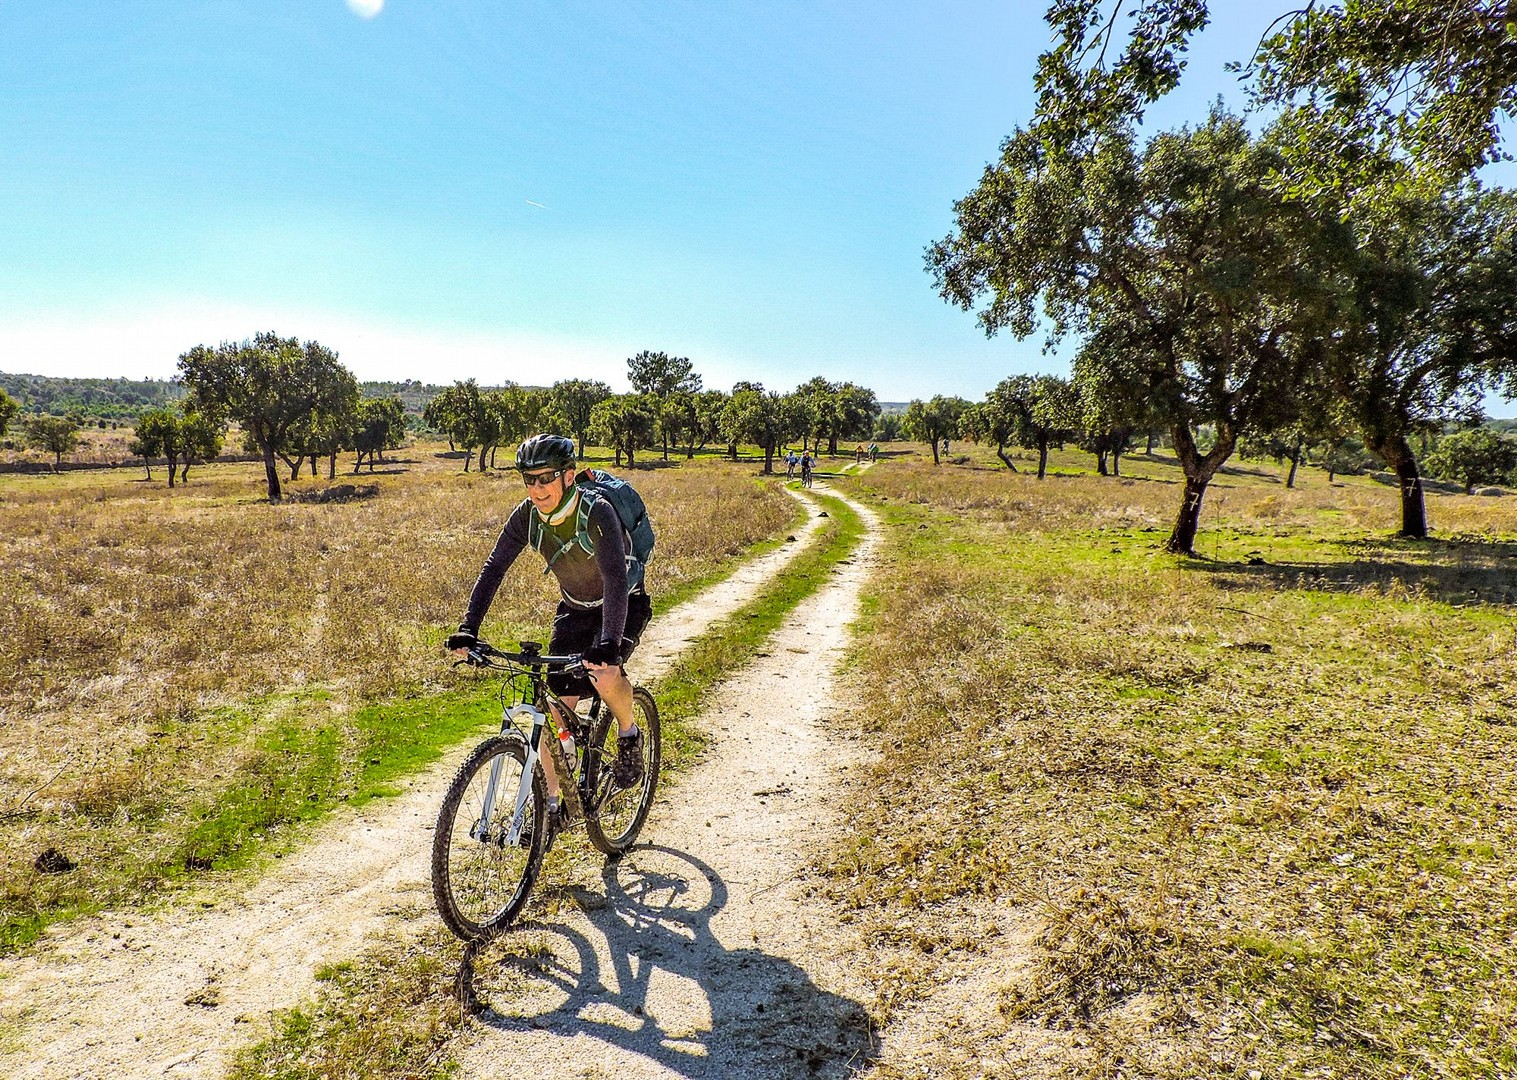 guided-roman-trails-mountain-bike-holiday-portugal-saddle-skedaddle.jpg - Portugal - Roman Trails - Guided Mountain Bike Holiday - Mountain Biking